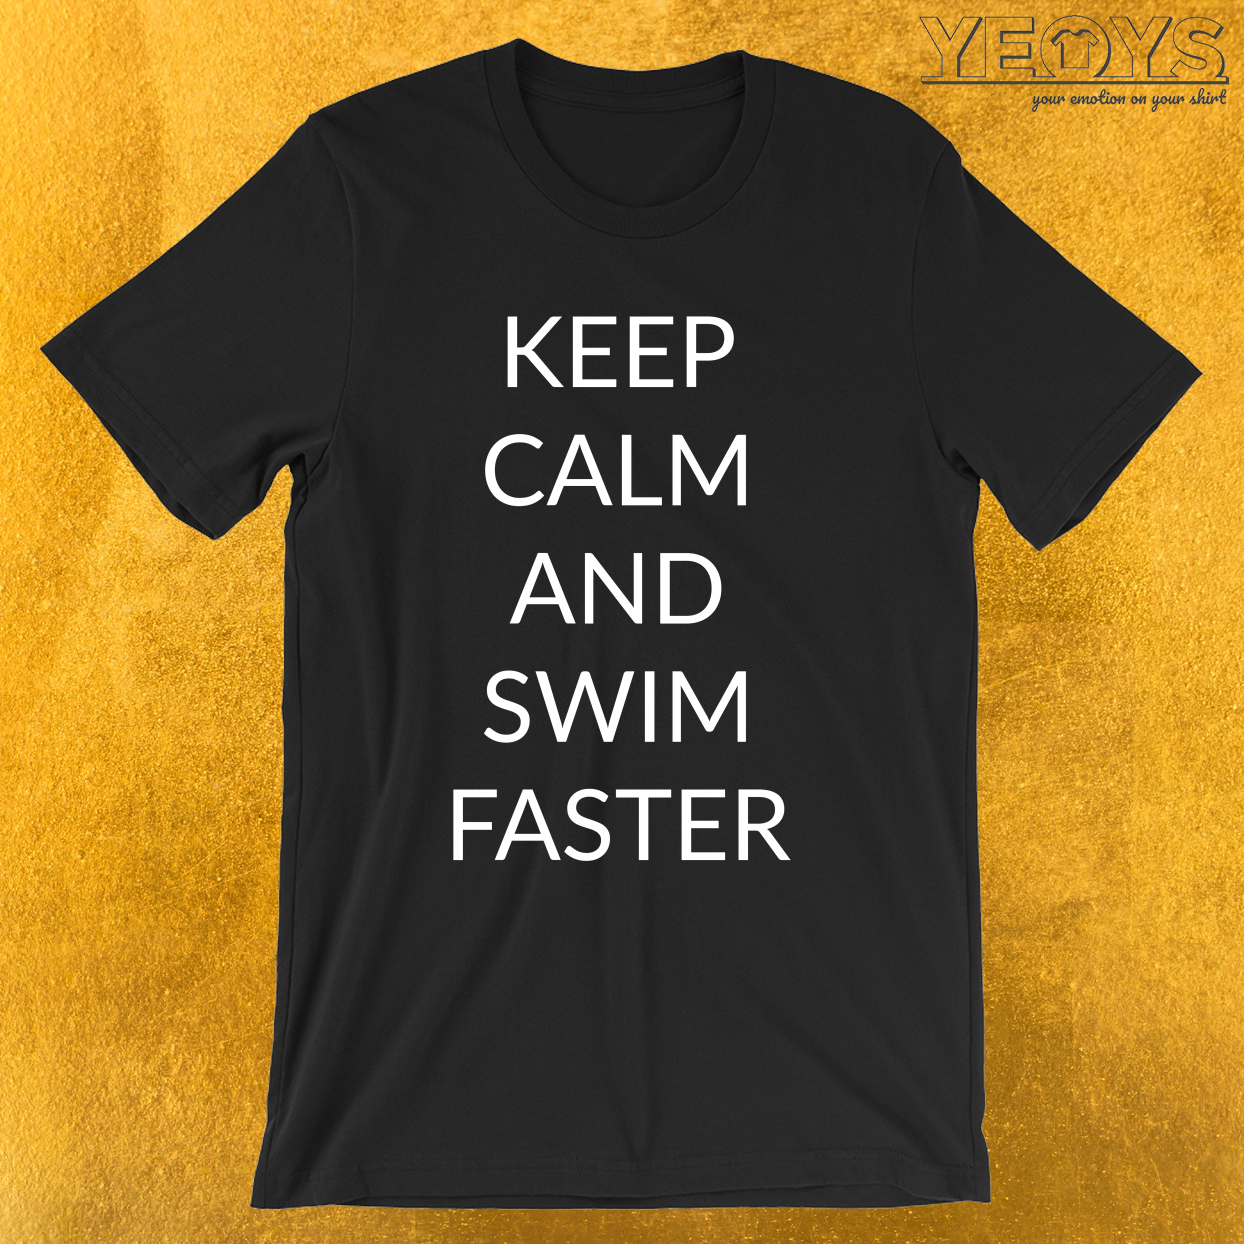 Keep Calm And Swim Faster – Funny Shark Tee